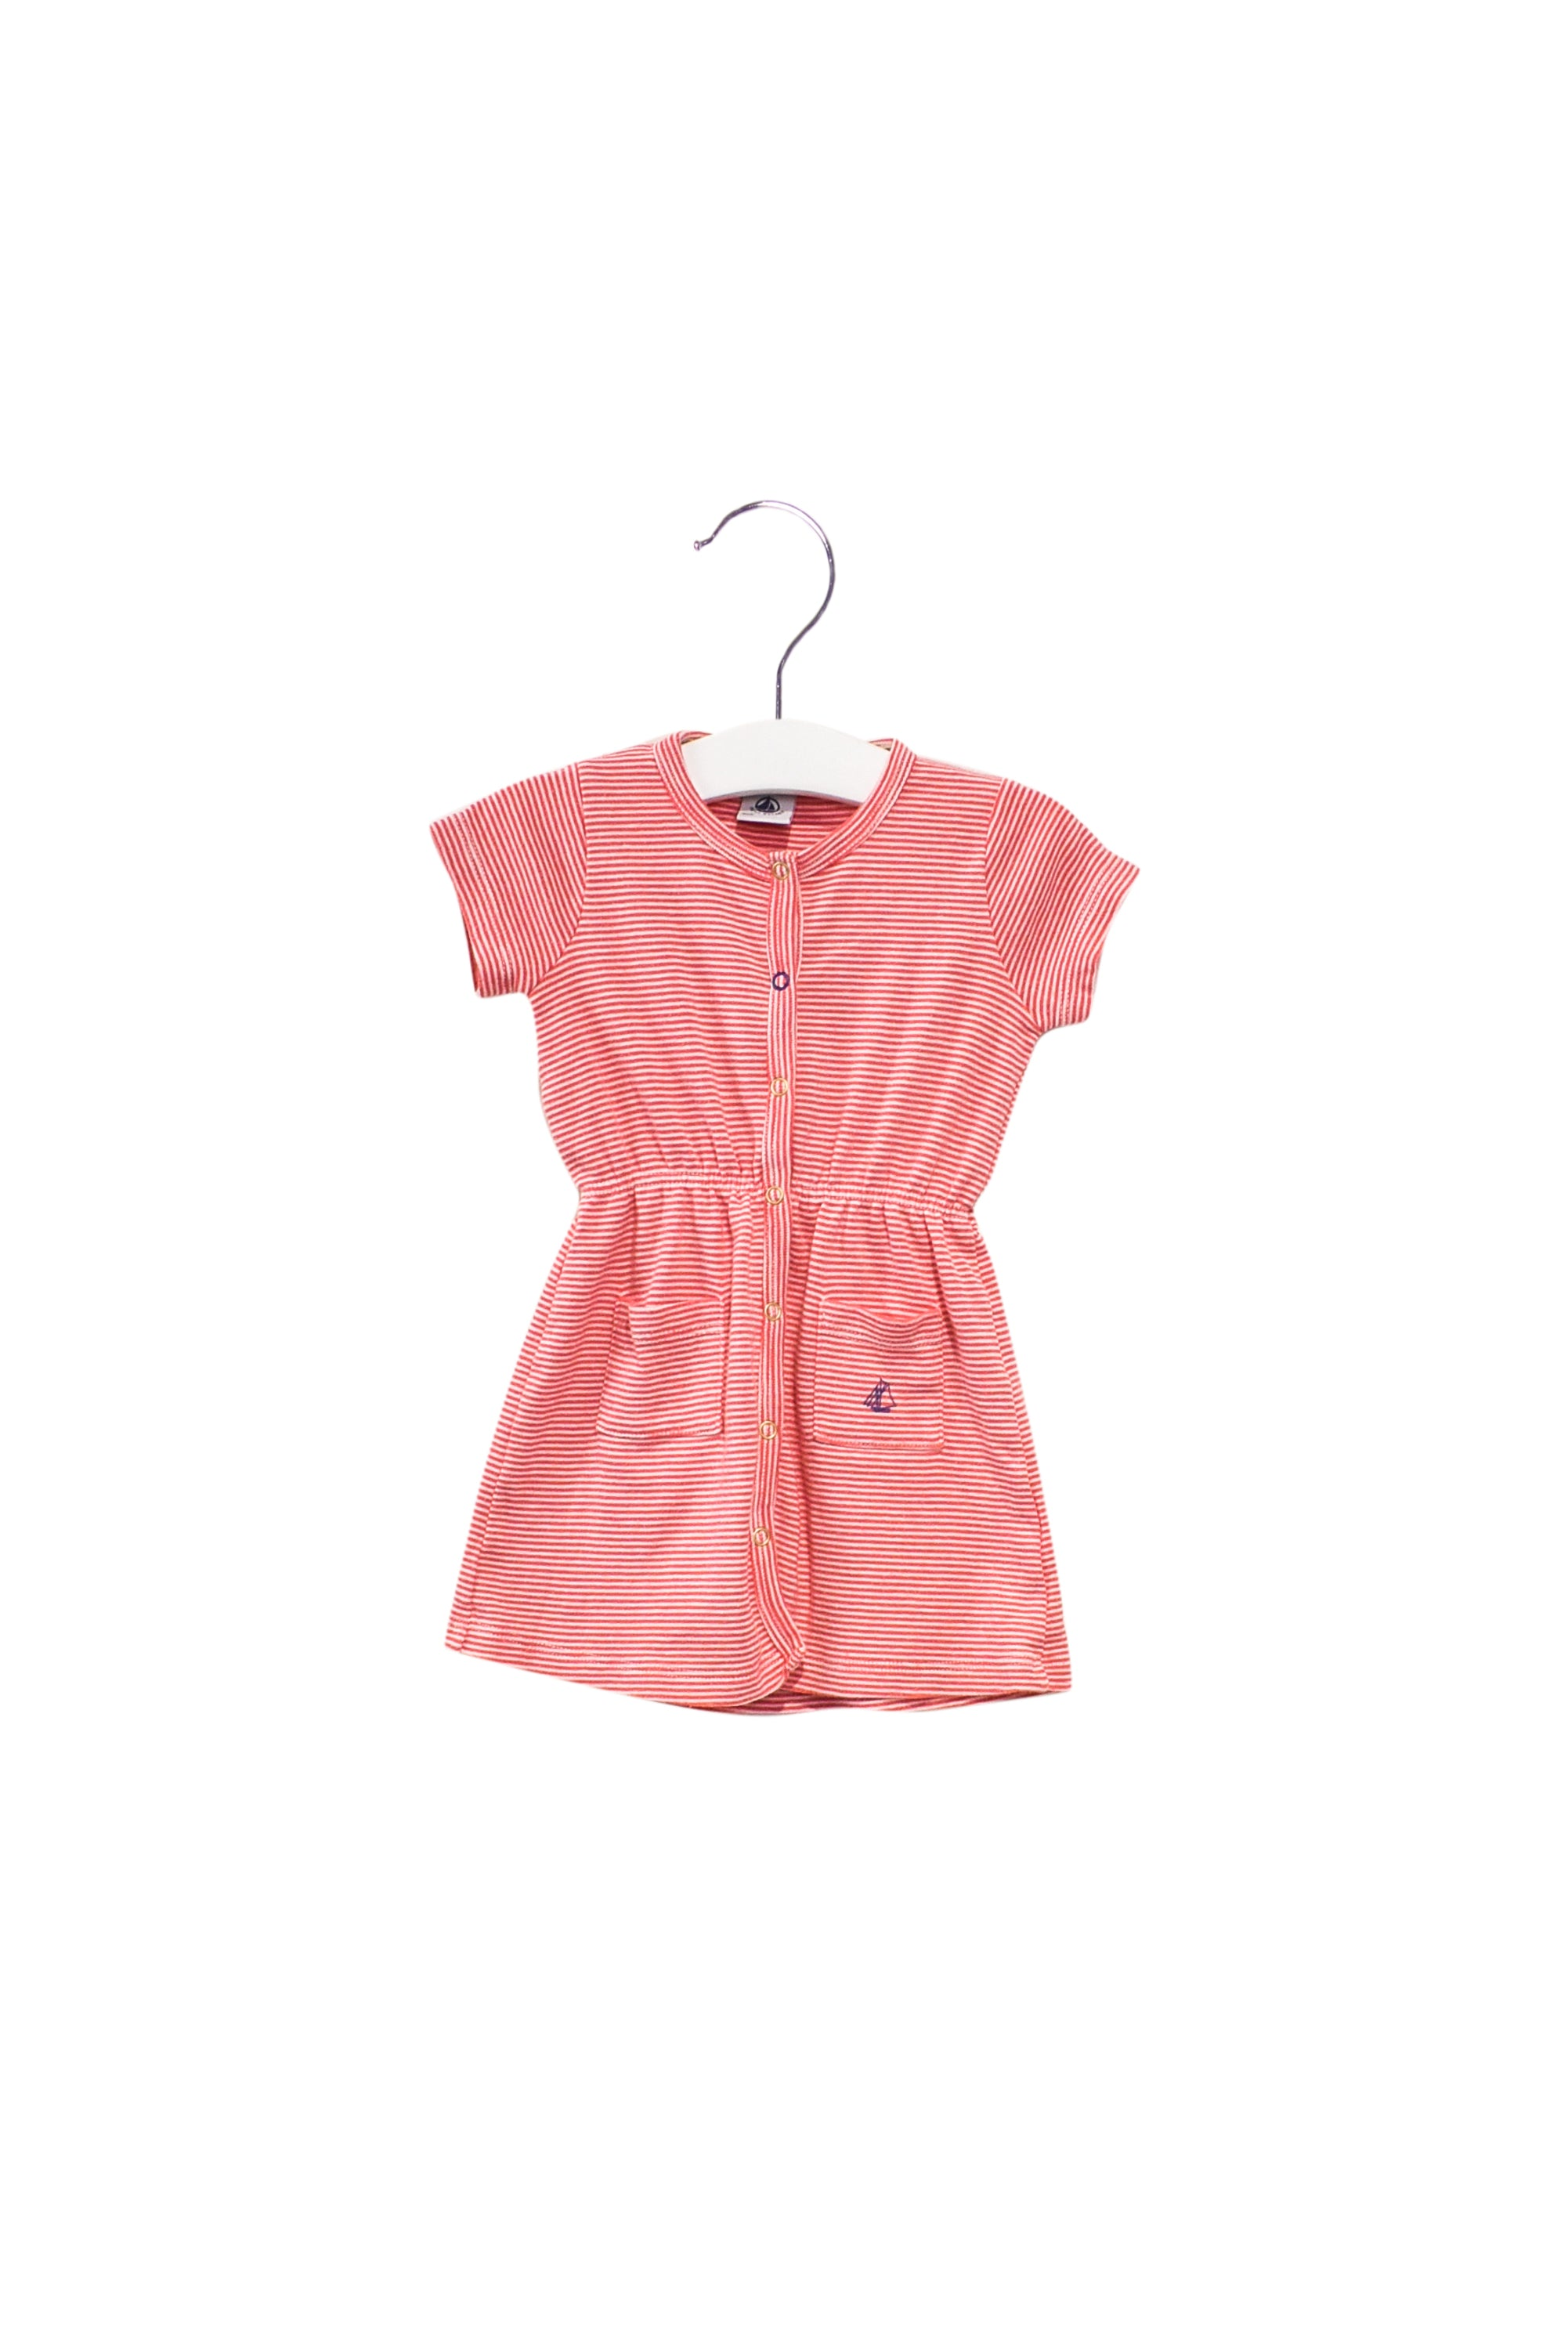 10028348 Petit Bateau Baby~Dress 12M at Retykle